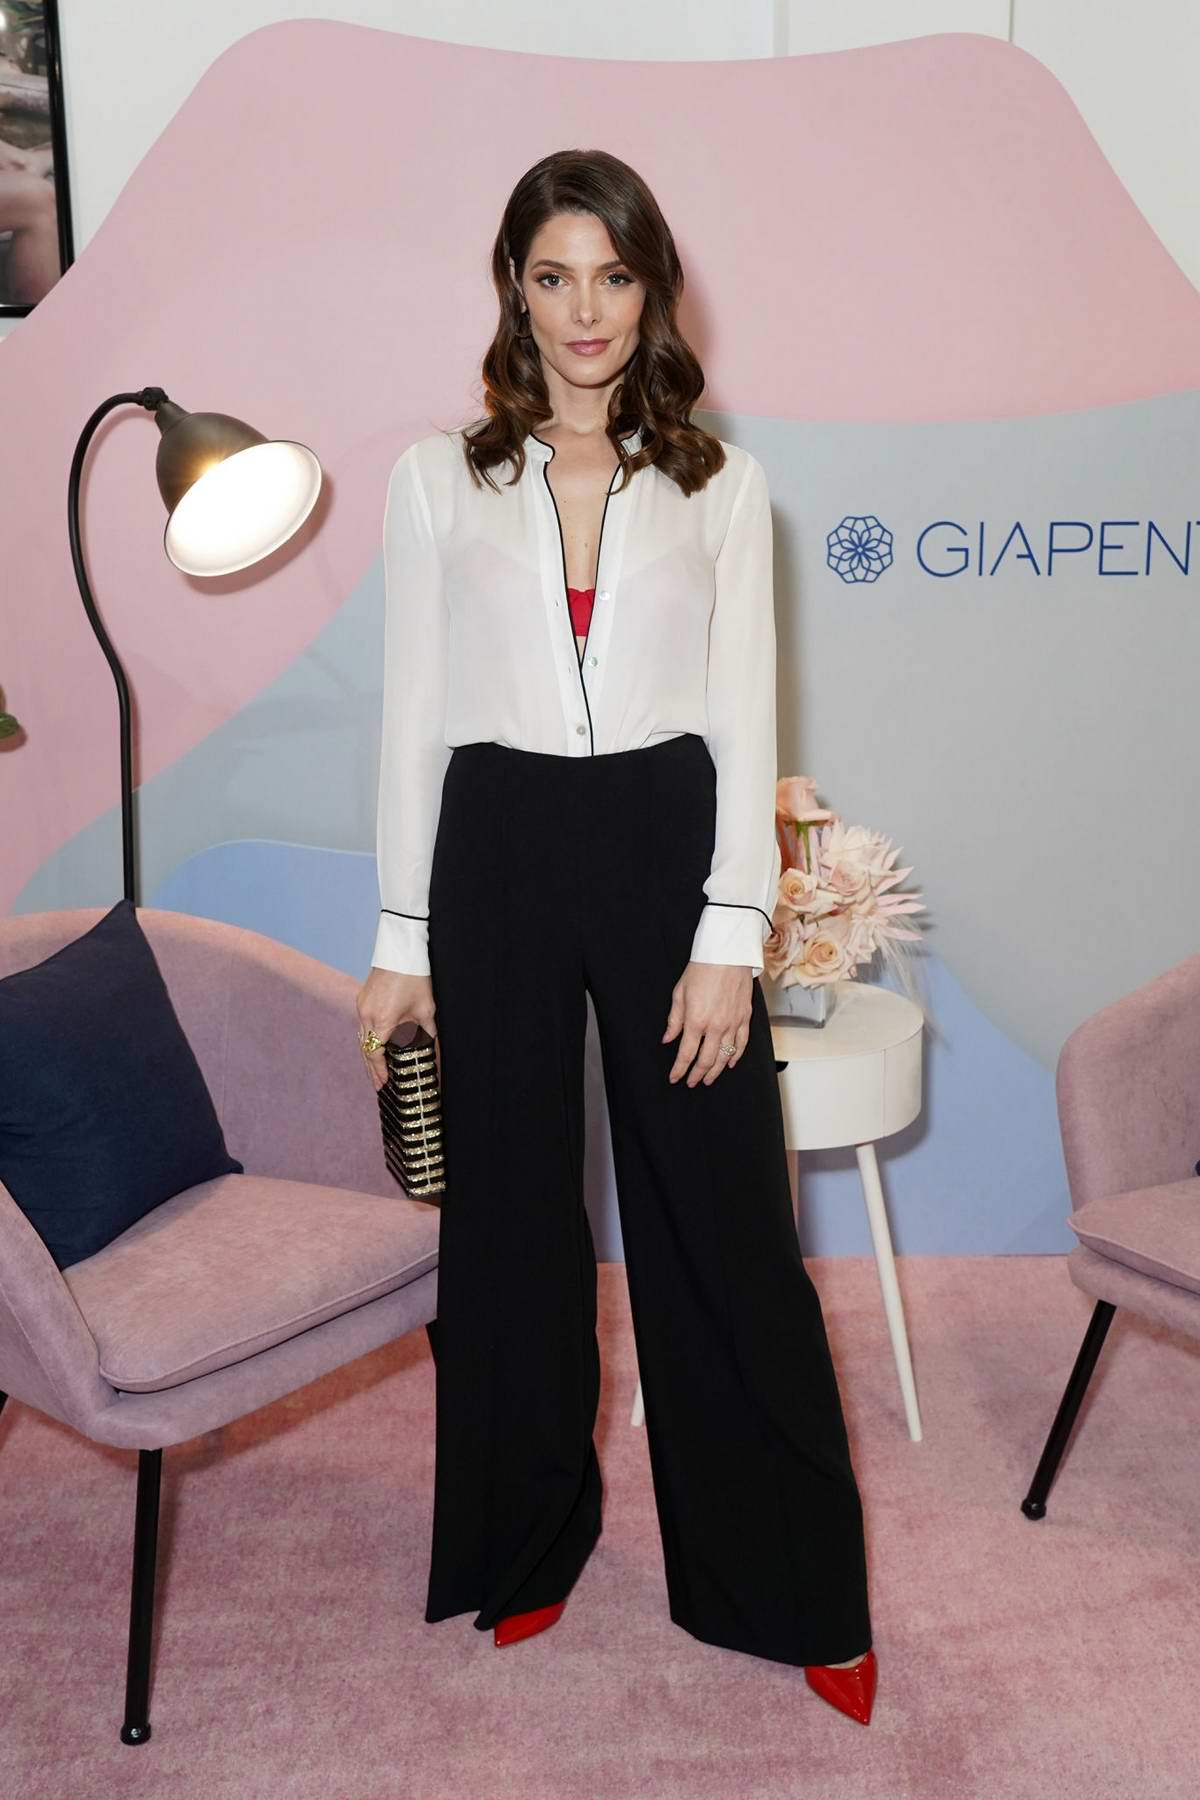 Ashley Greene at the GIAPENTA Wynwood Pop-Up Shop in Miami, Florida